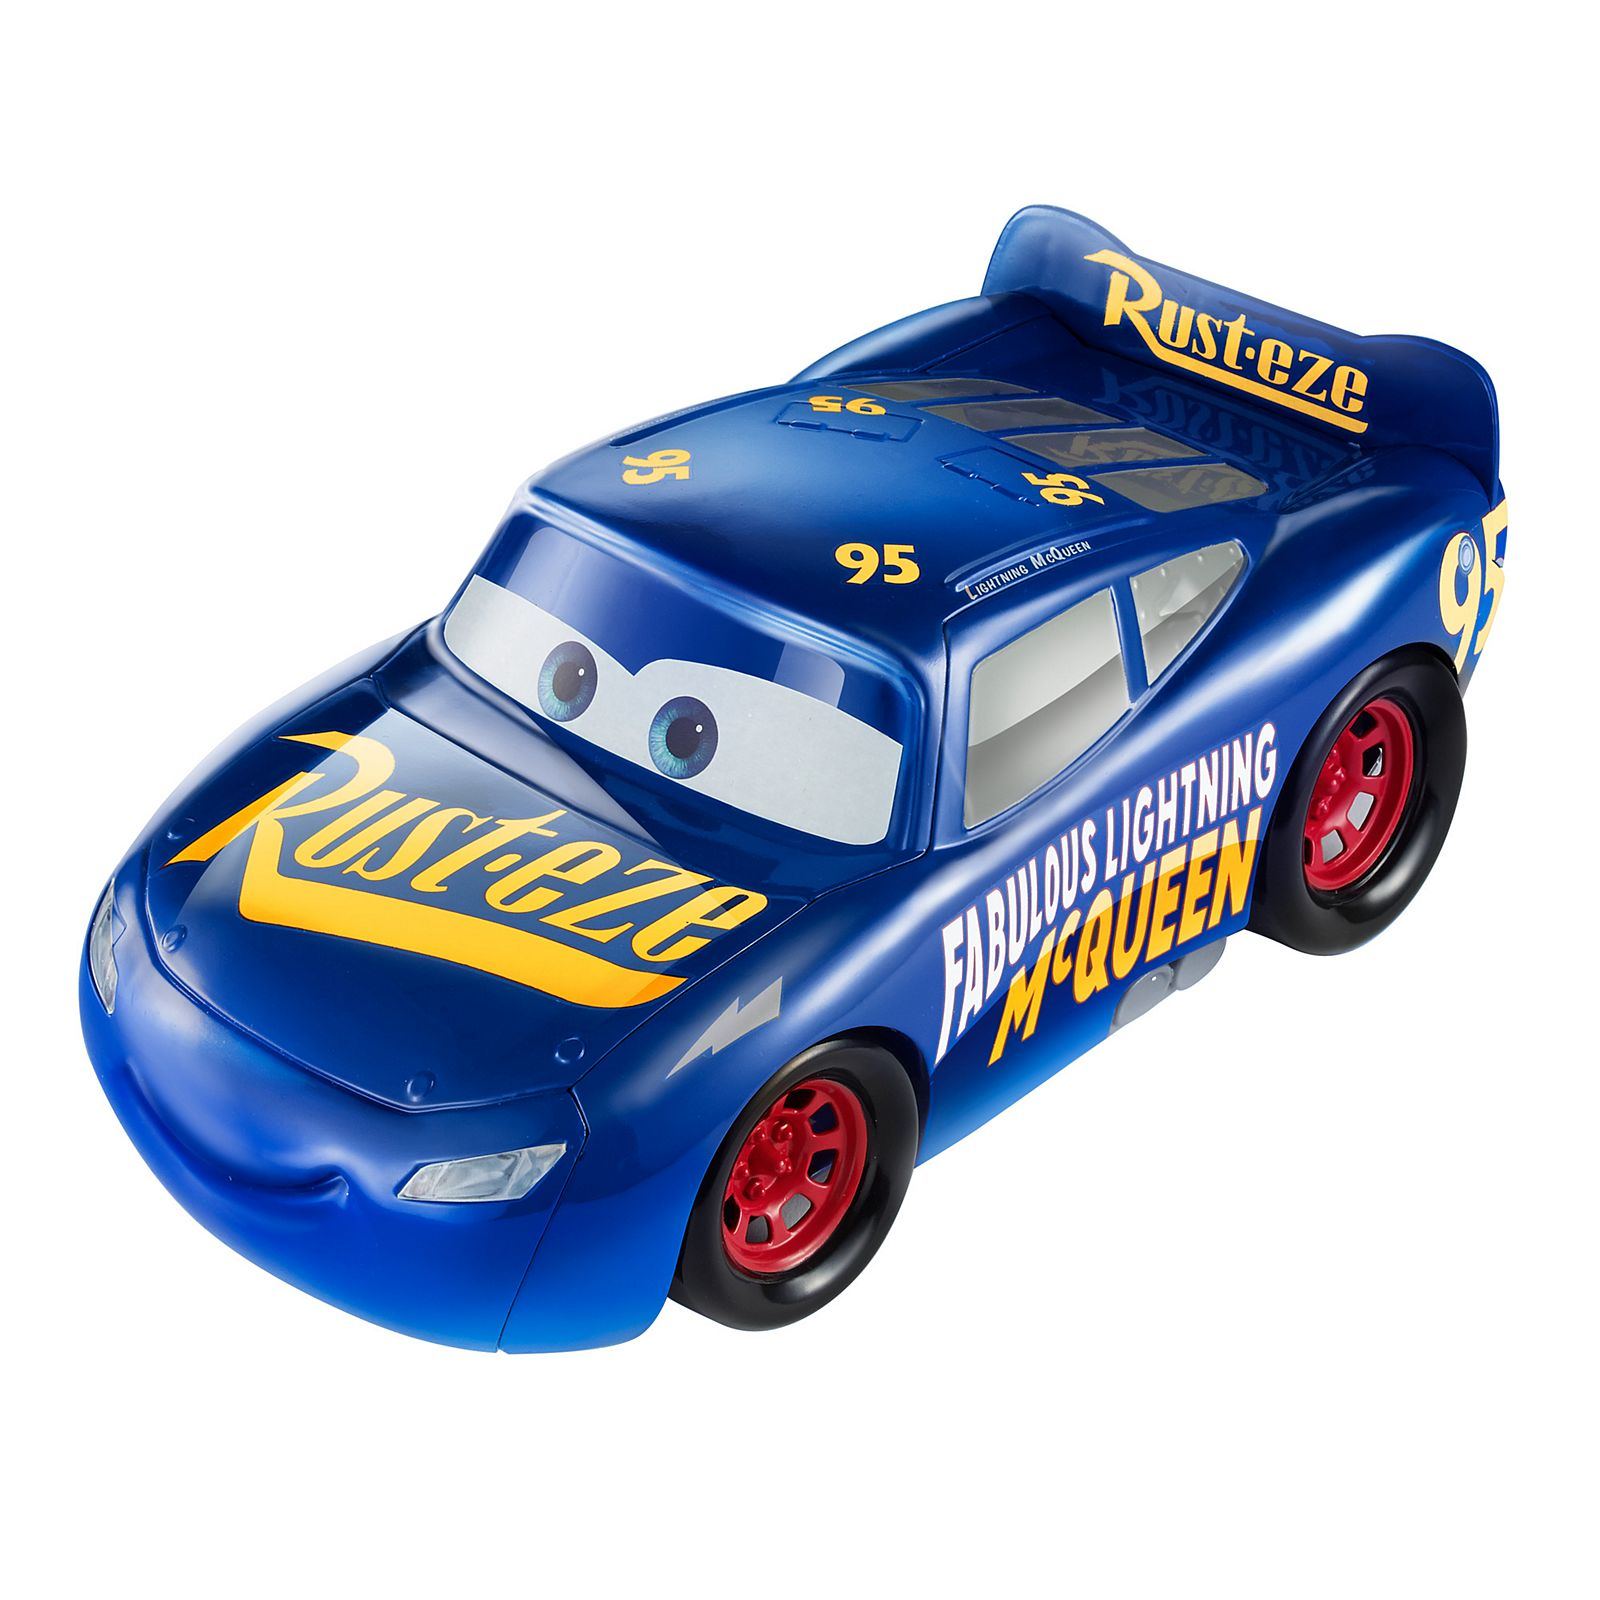 Disney Pixar Cars 3 Transforming Fabulous Lightning Mcqueen